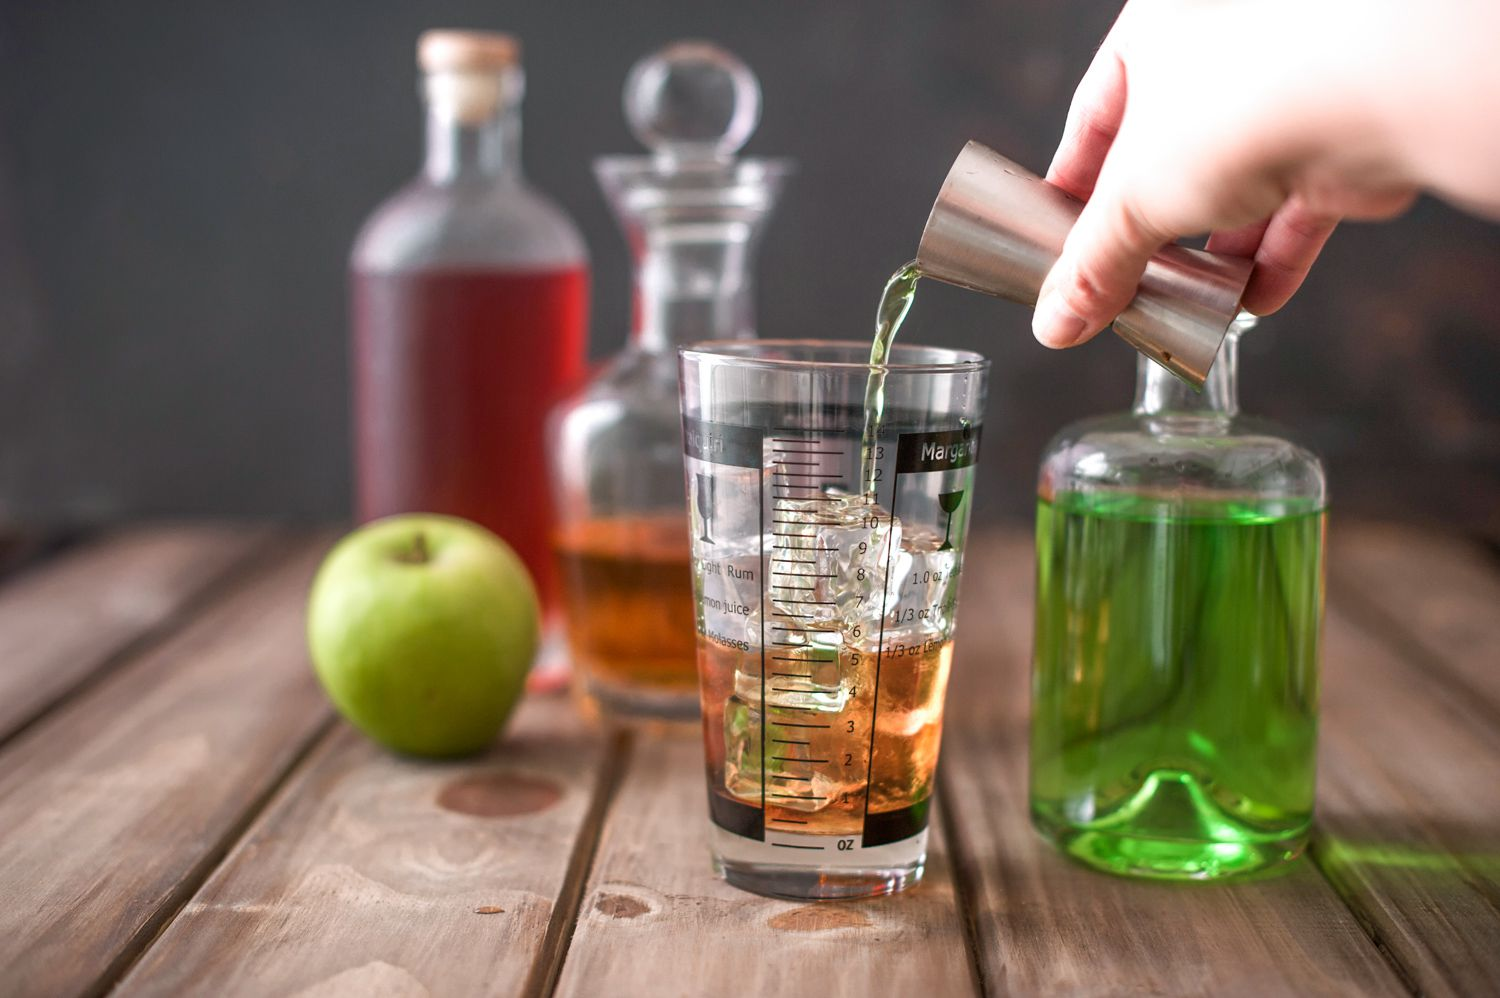 Pour ingredients into a cocktail mixer with ice